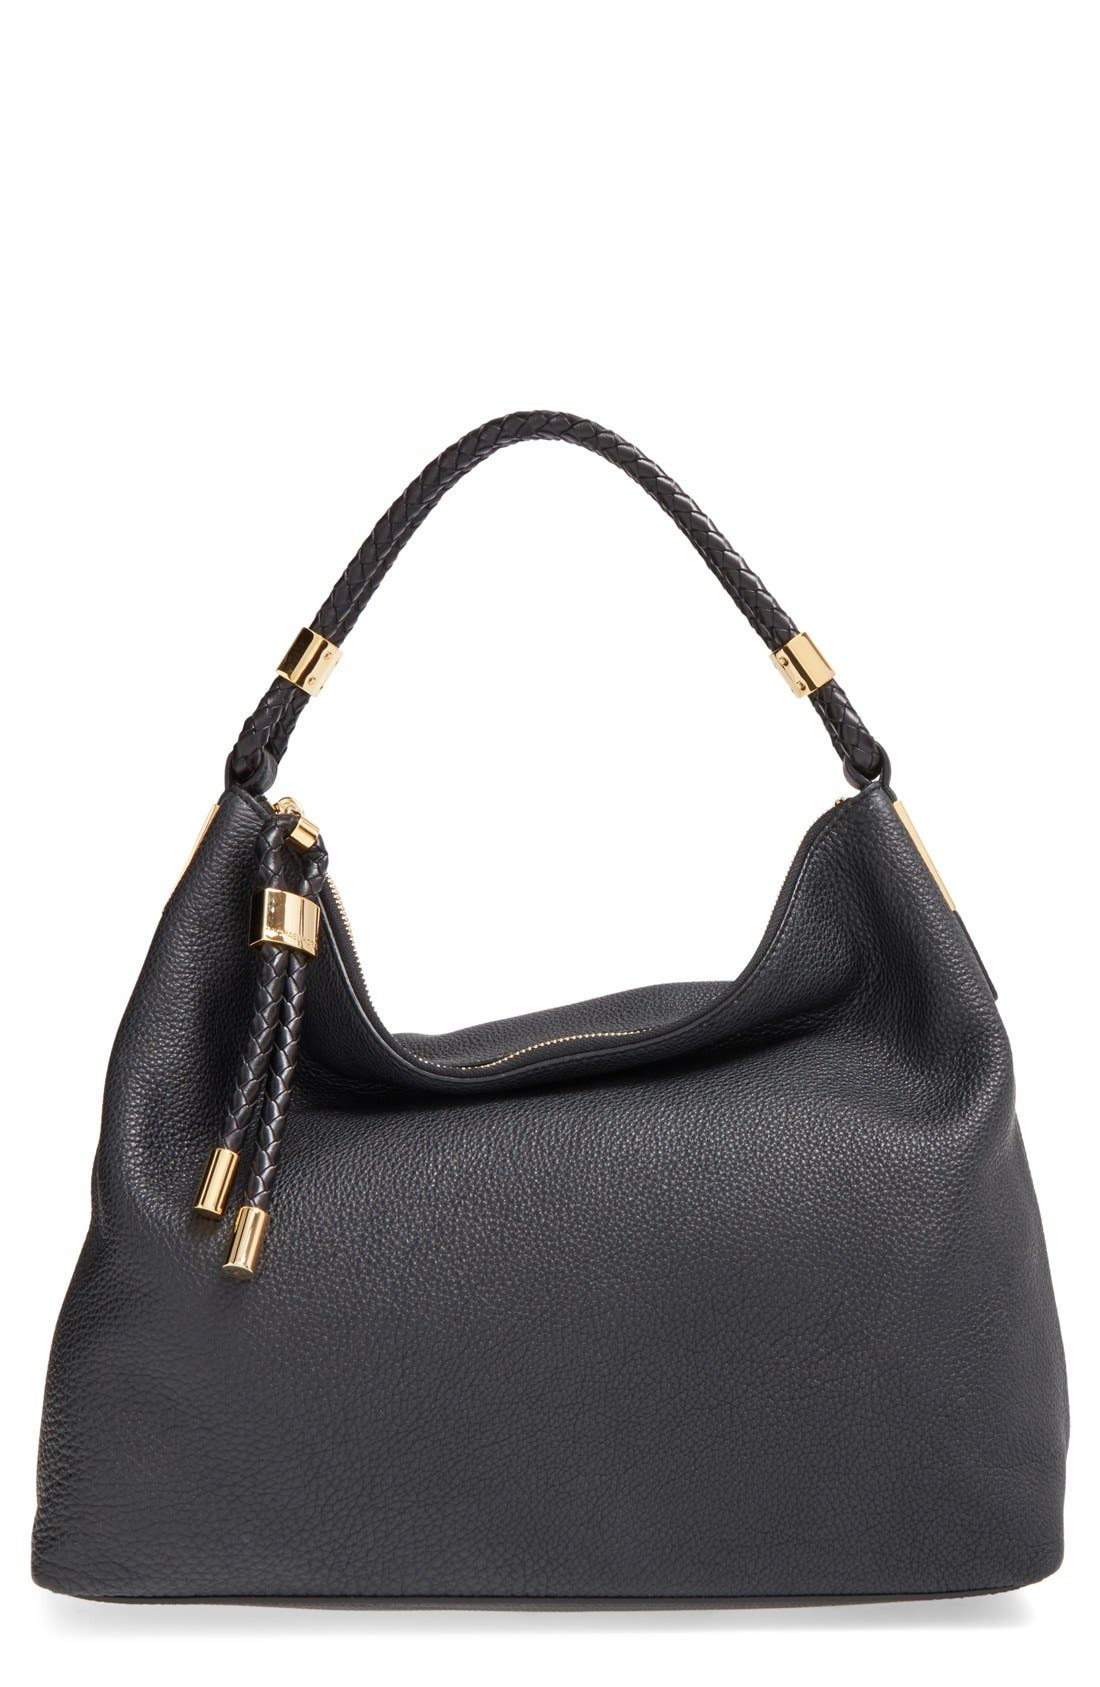 'Large Skorpios' Leather Hobo,                         Main,                         color, Black